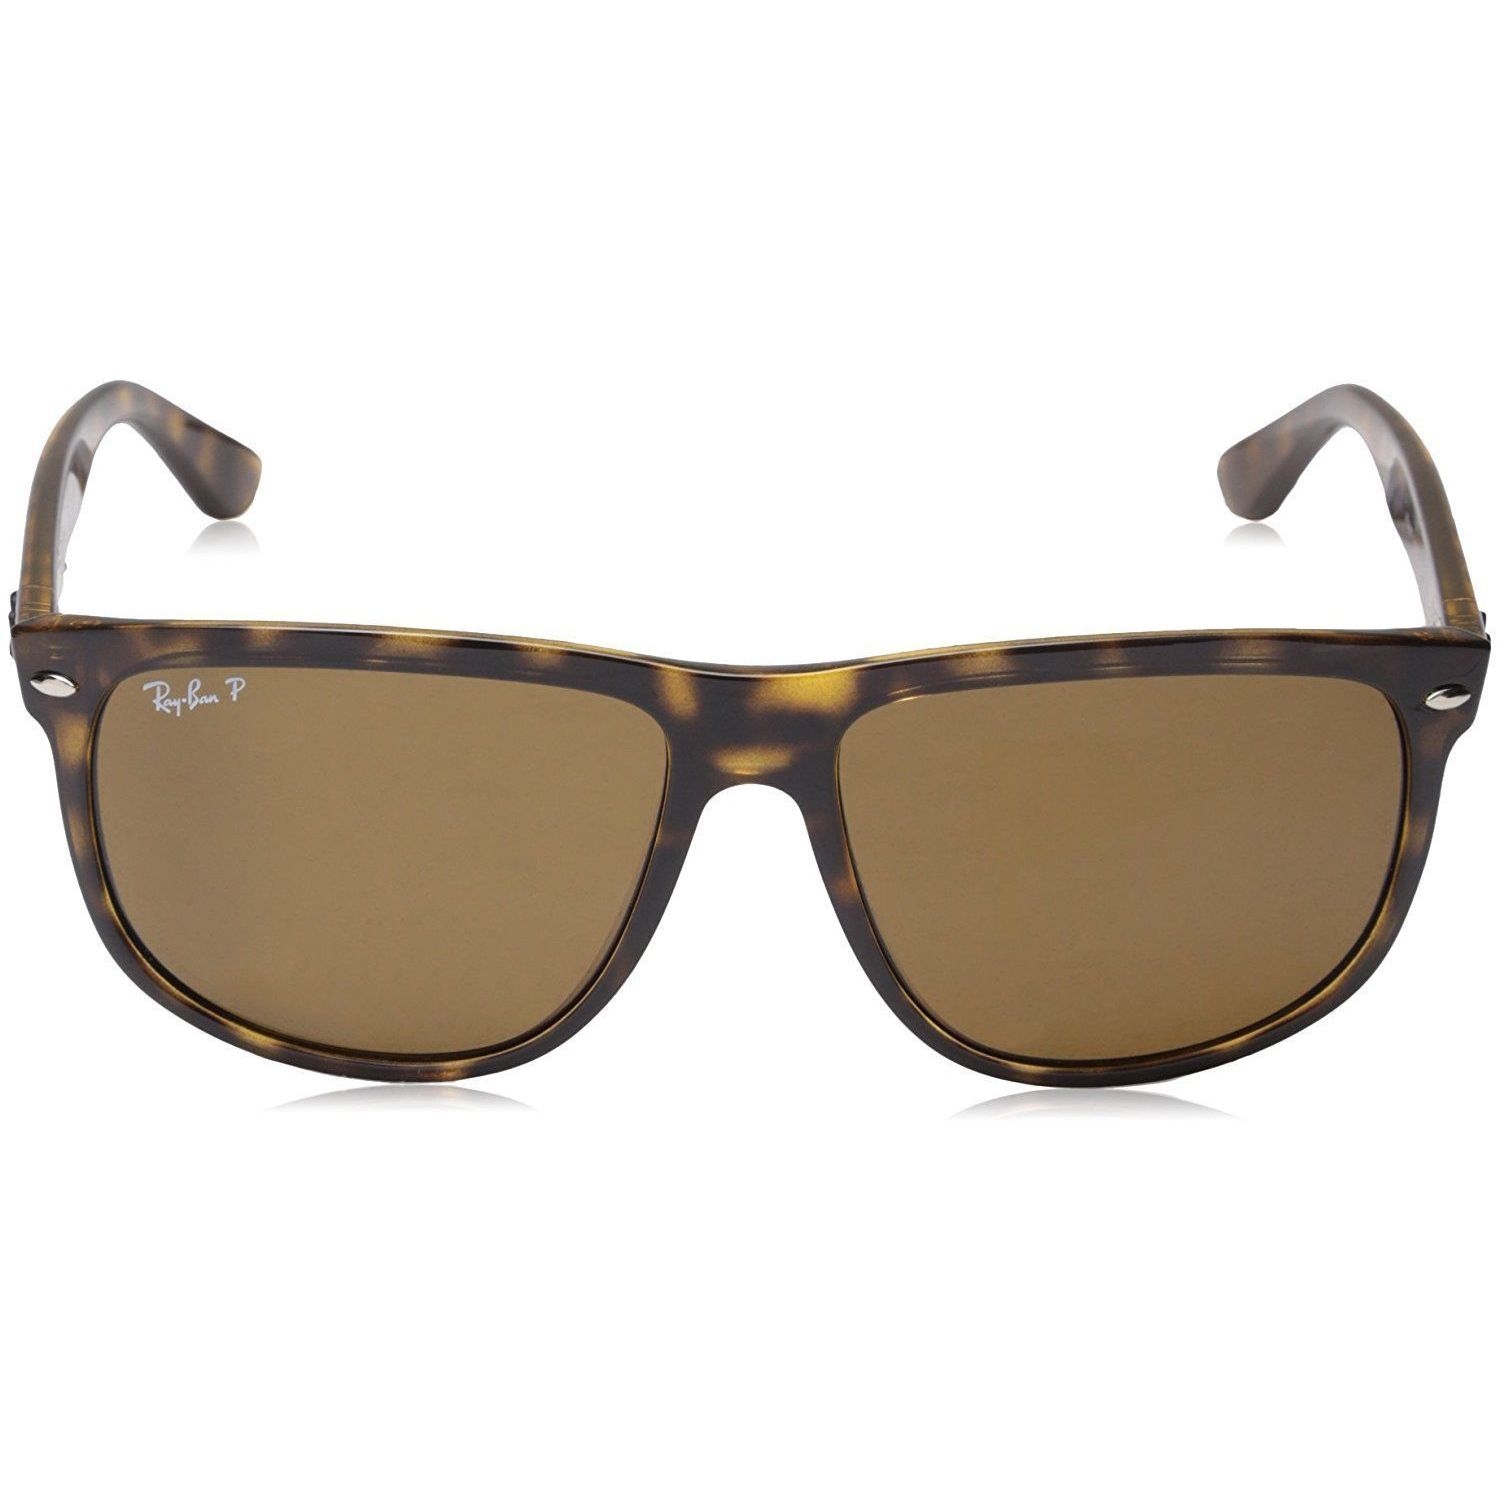 a479c48bd3 Shop Ray-Ban RB4147 710 57 Tortoise Frame Polarized Brown 60mm Lens  Sunglasses - Free Shipping Today - Overstock - 14327942